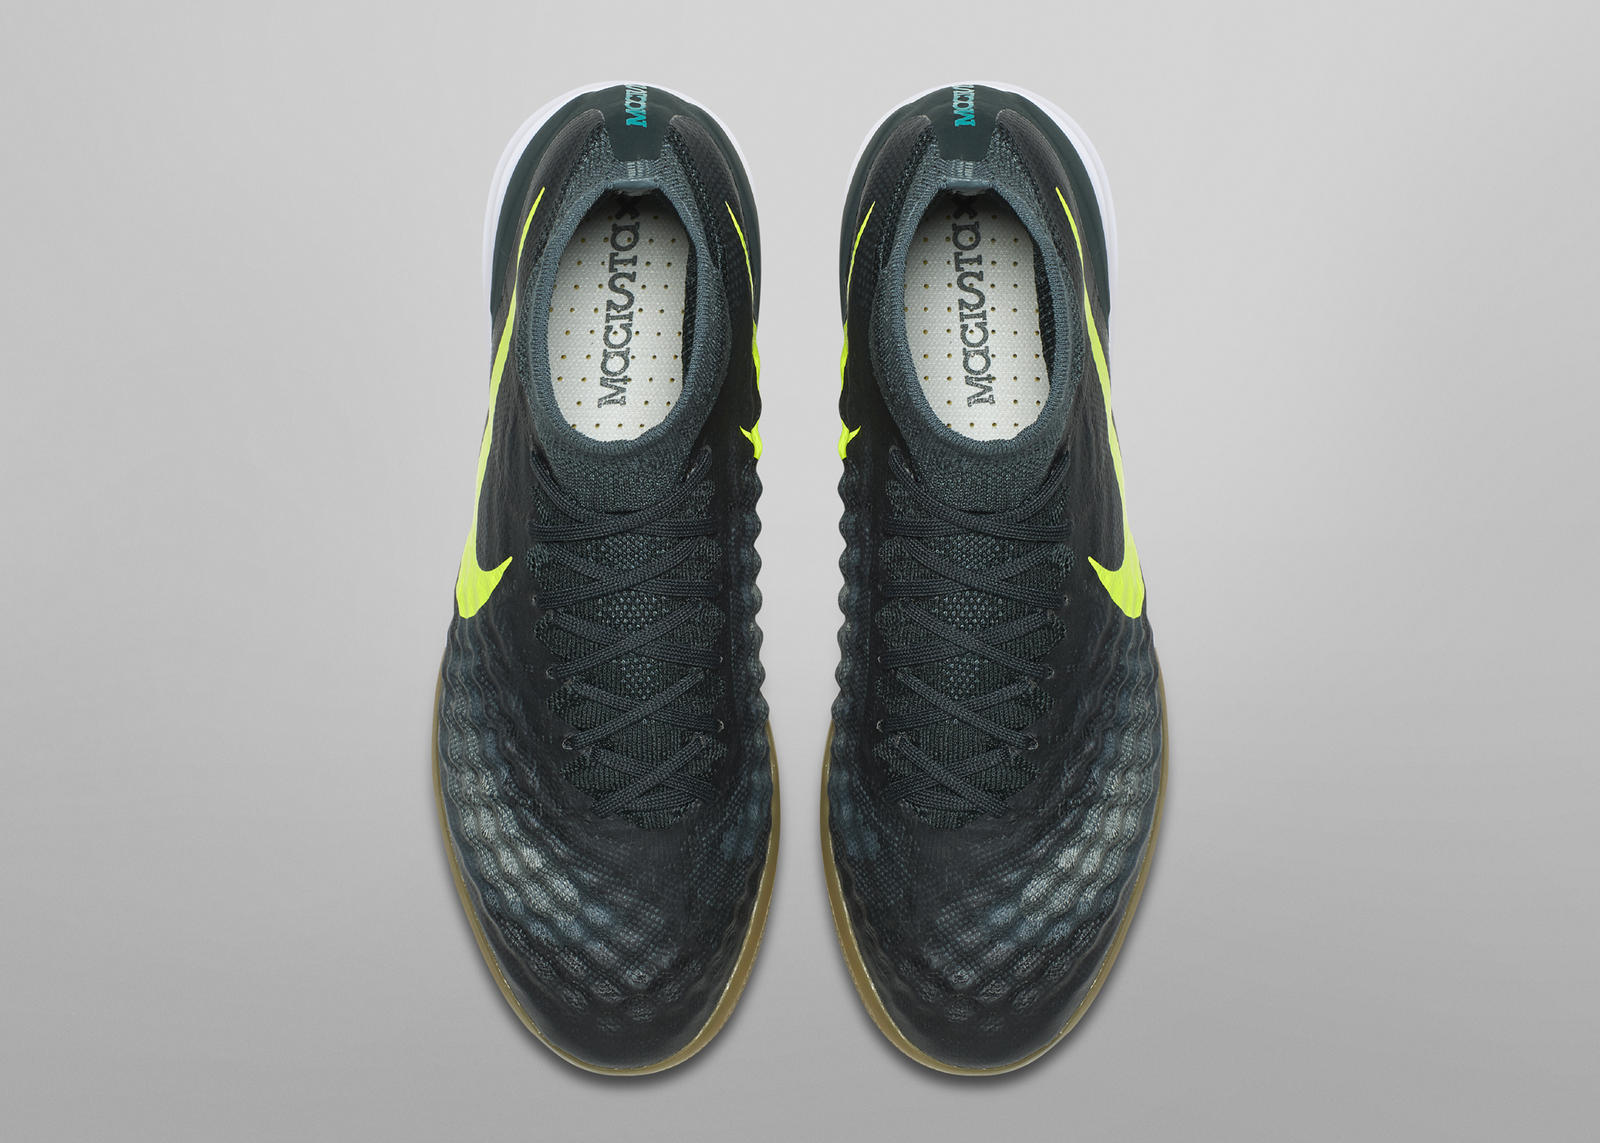 Ho16 Gfb Floodlights Nfx Magista X Proximo Ic 04 07